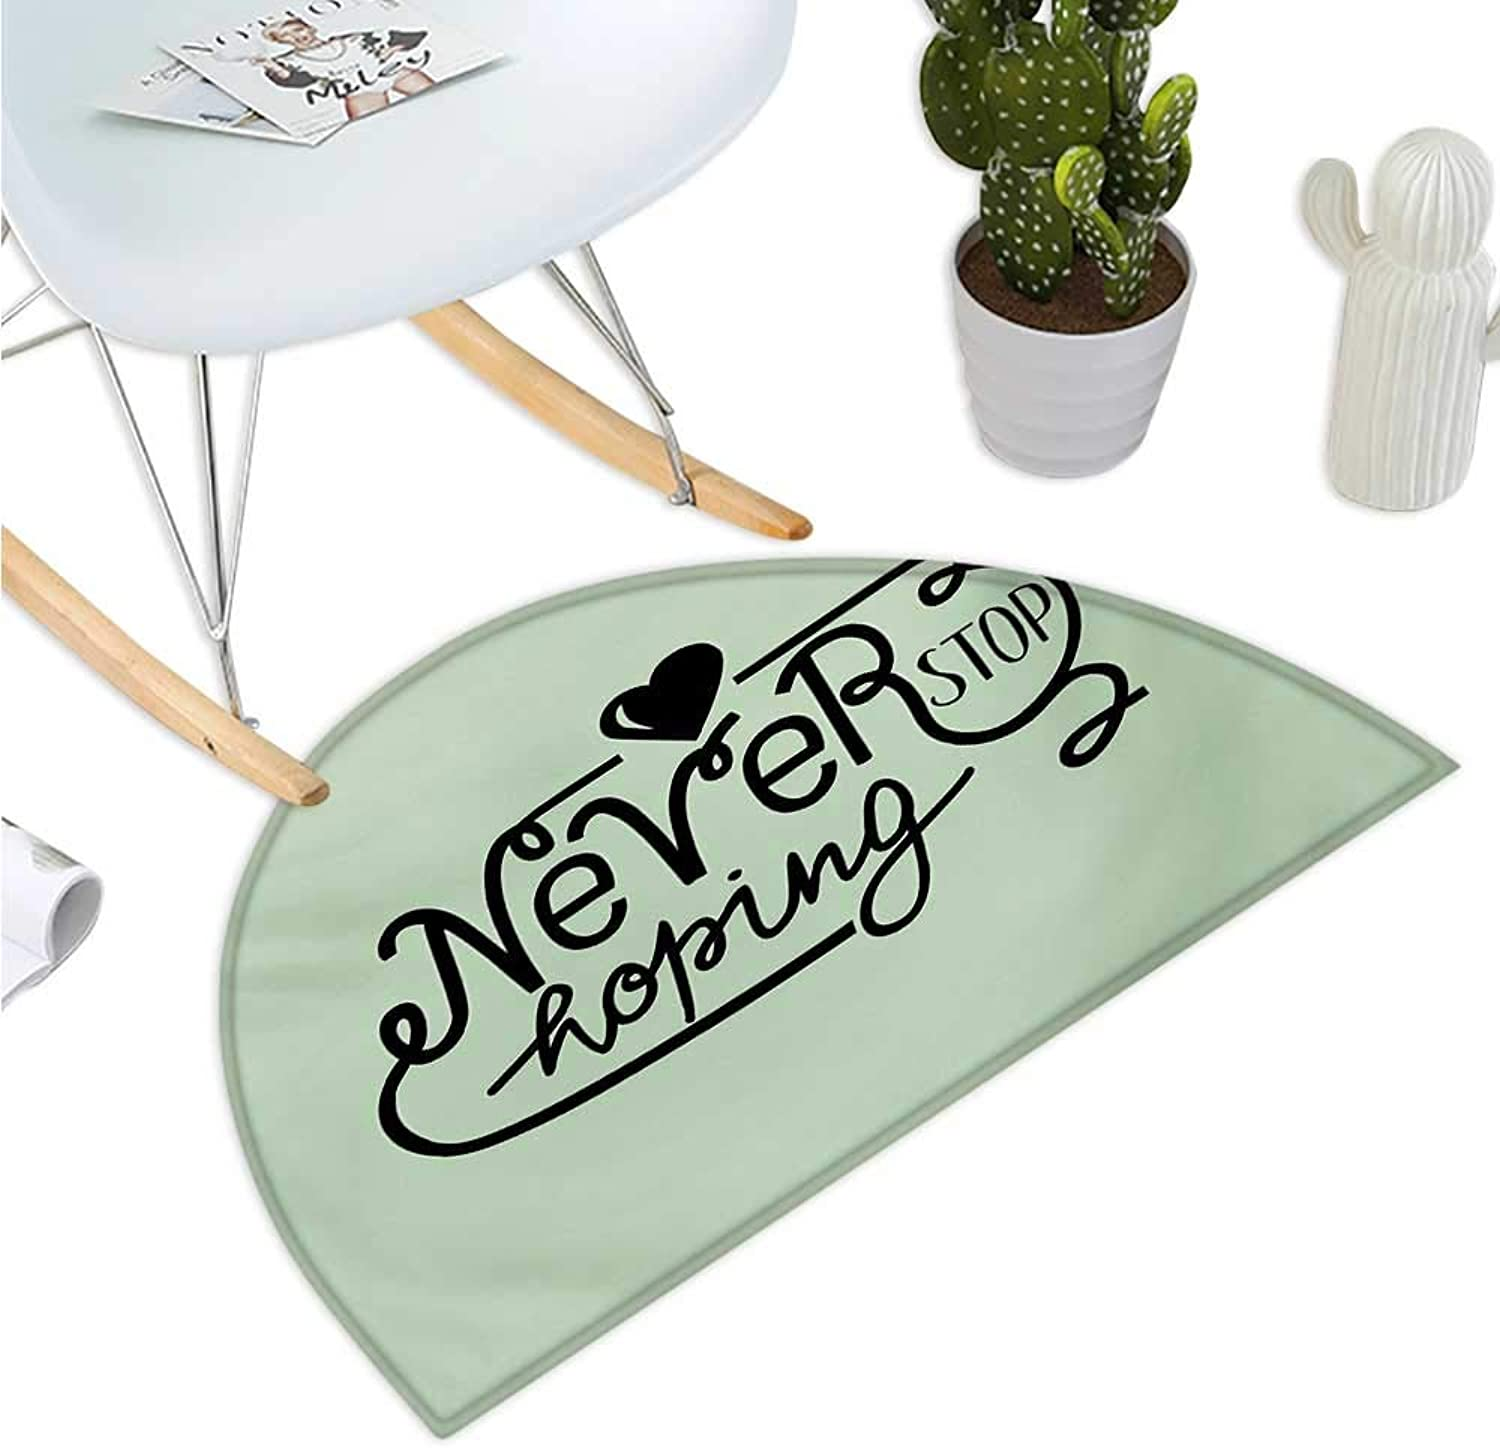 Hope Semicircular Cushion Inspirational Never Stop Hoping Quote with a Black Heart on Green Backdrop Bathroom Mat H 39.3  xD 59  Pale Green and Black